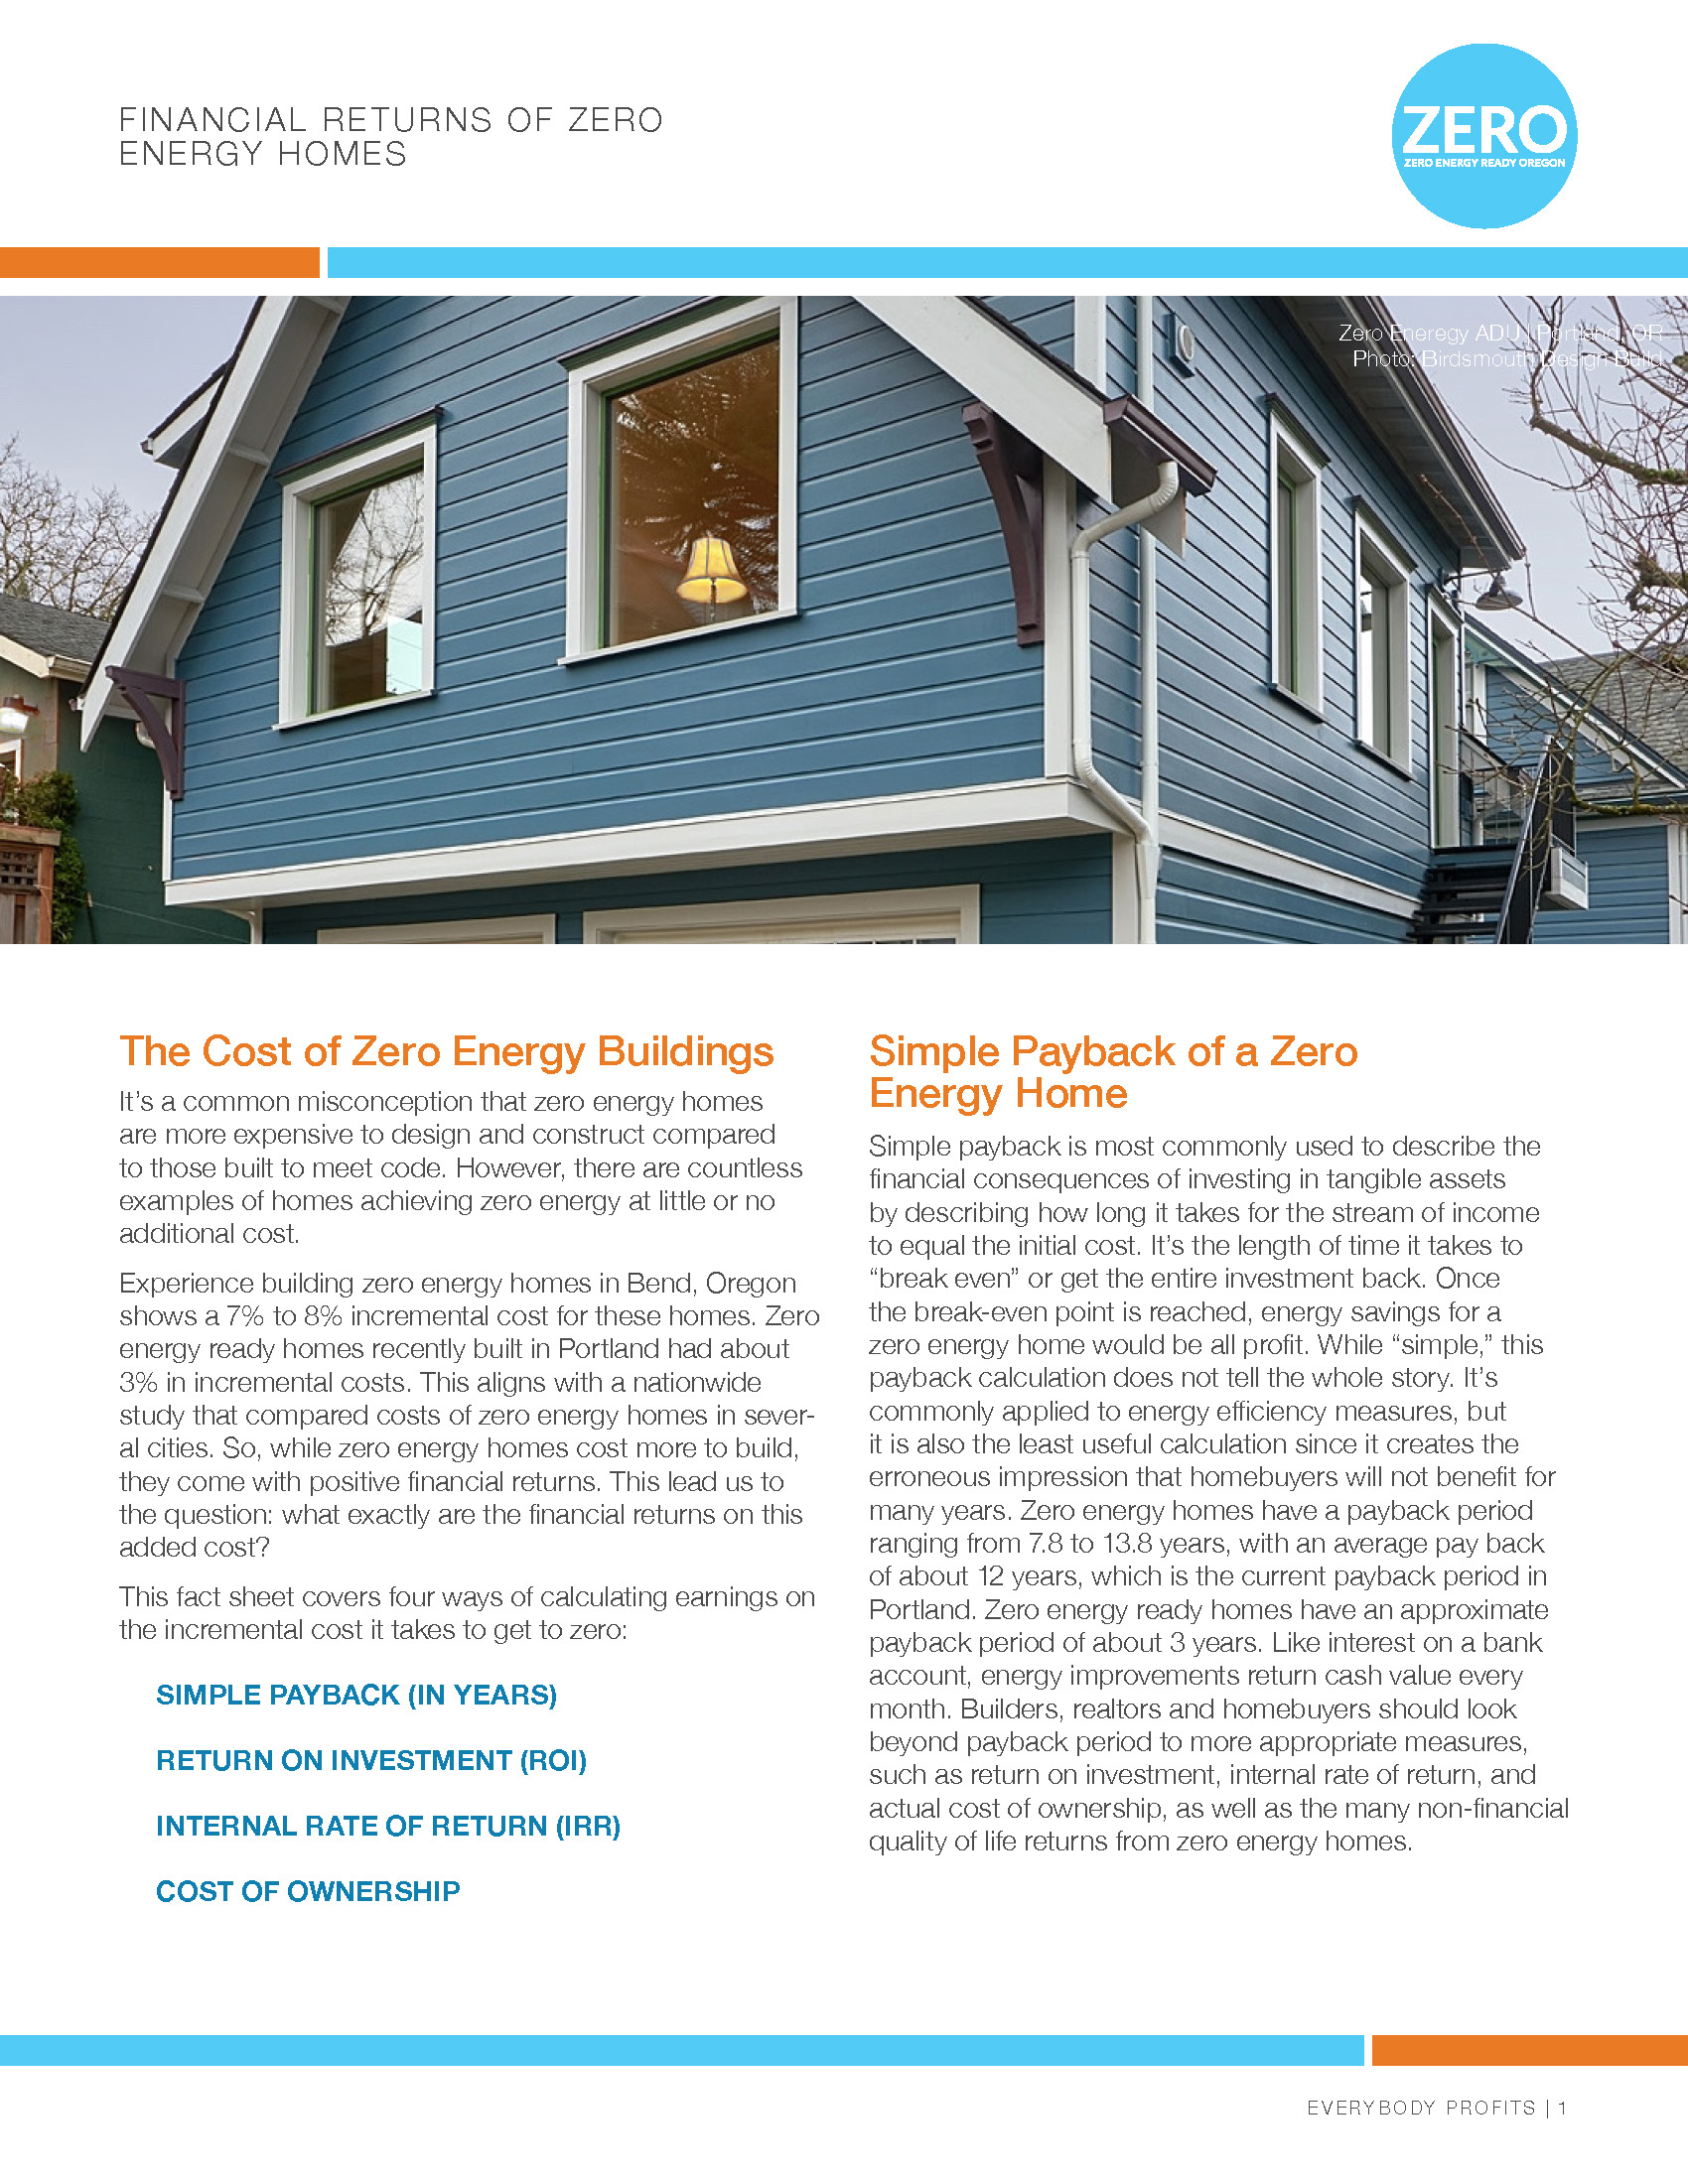 ZERO Cost Fact Sheet - It's a common misconception that zero energy homes are more expensive to design and construct compared to those built to meet code. However, there are countless examples of homes achieving zero energy at little or no additional cost. This fact sheet covers four ways of calculating earnings on the incremental cost it takes to get to zero:SIMPLE PAYBACK (IN YEARS)RETURN ON INVESTMENT (ROI)INTERNAL RATE OF RETURN (IRR)COST OF OWNERSHIP